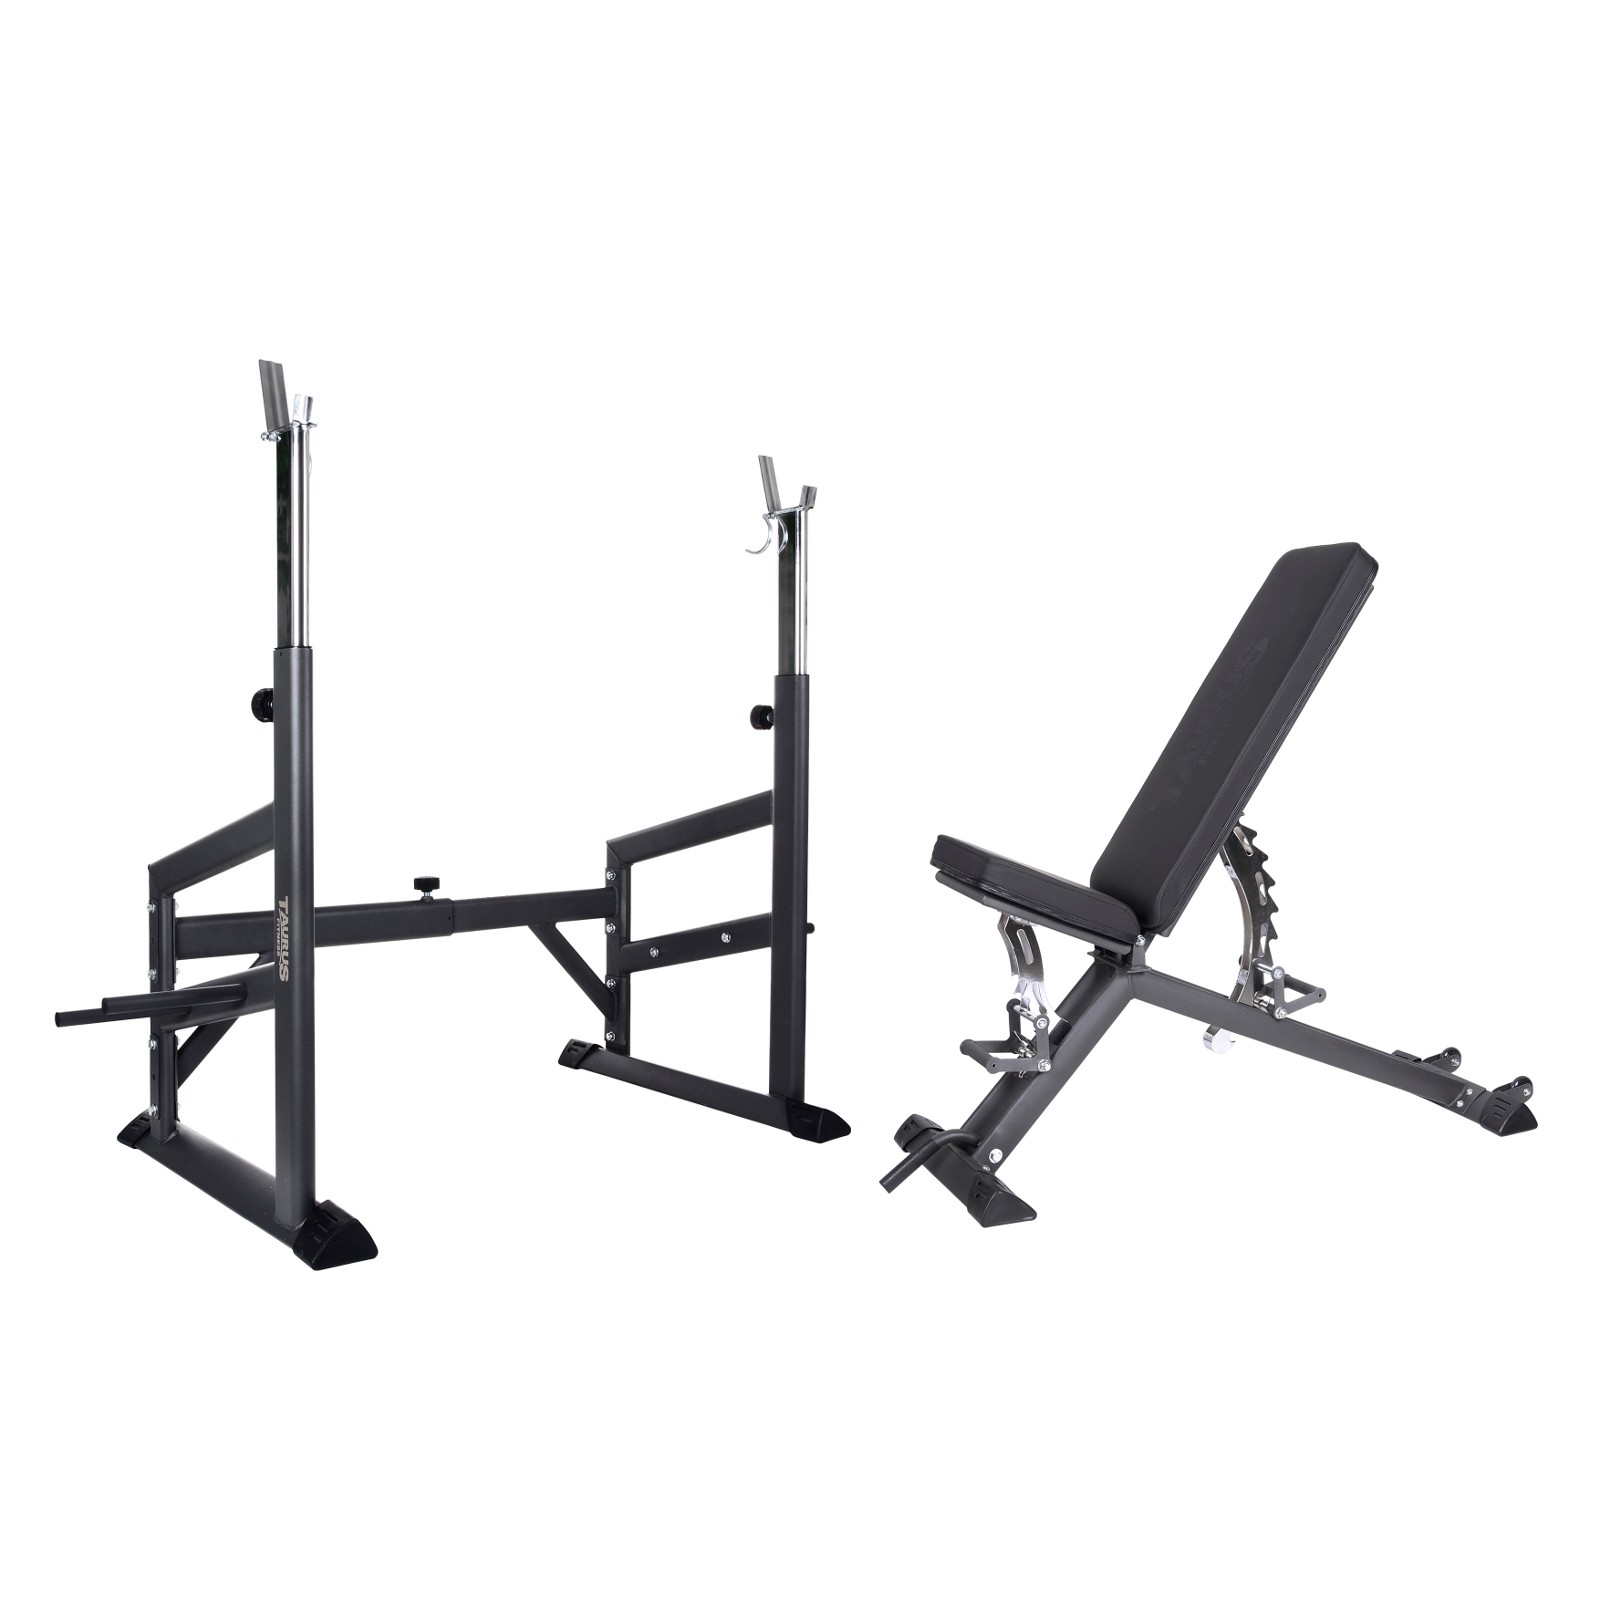 Taurus Weight Bench B900 Barbell Rack Pro Best Buy At Sport Tiedje